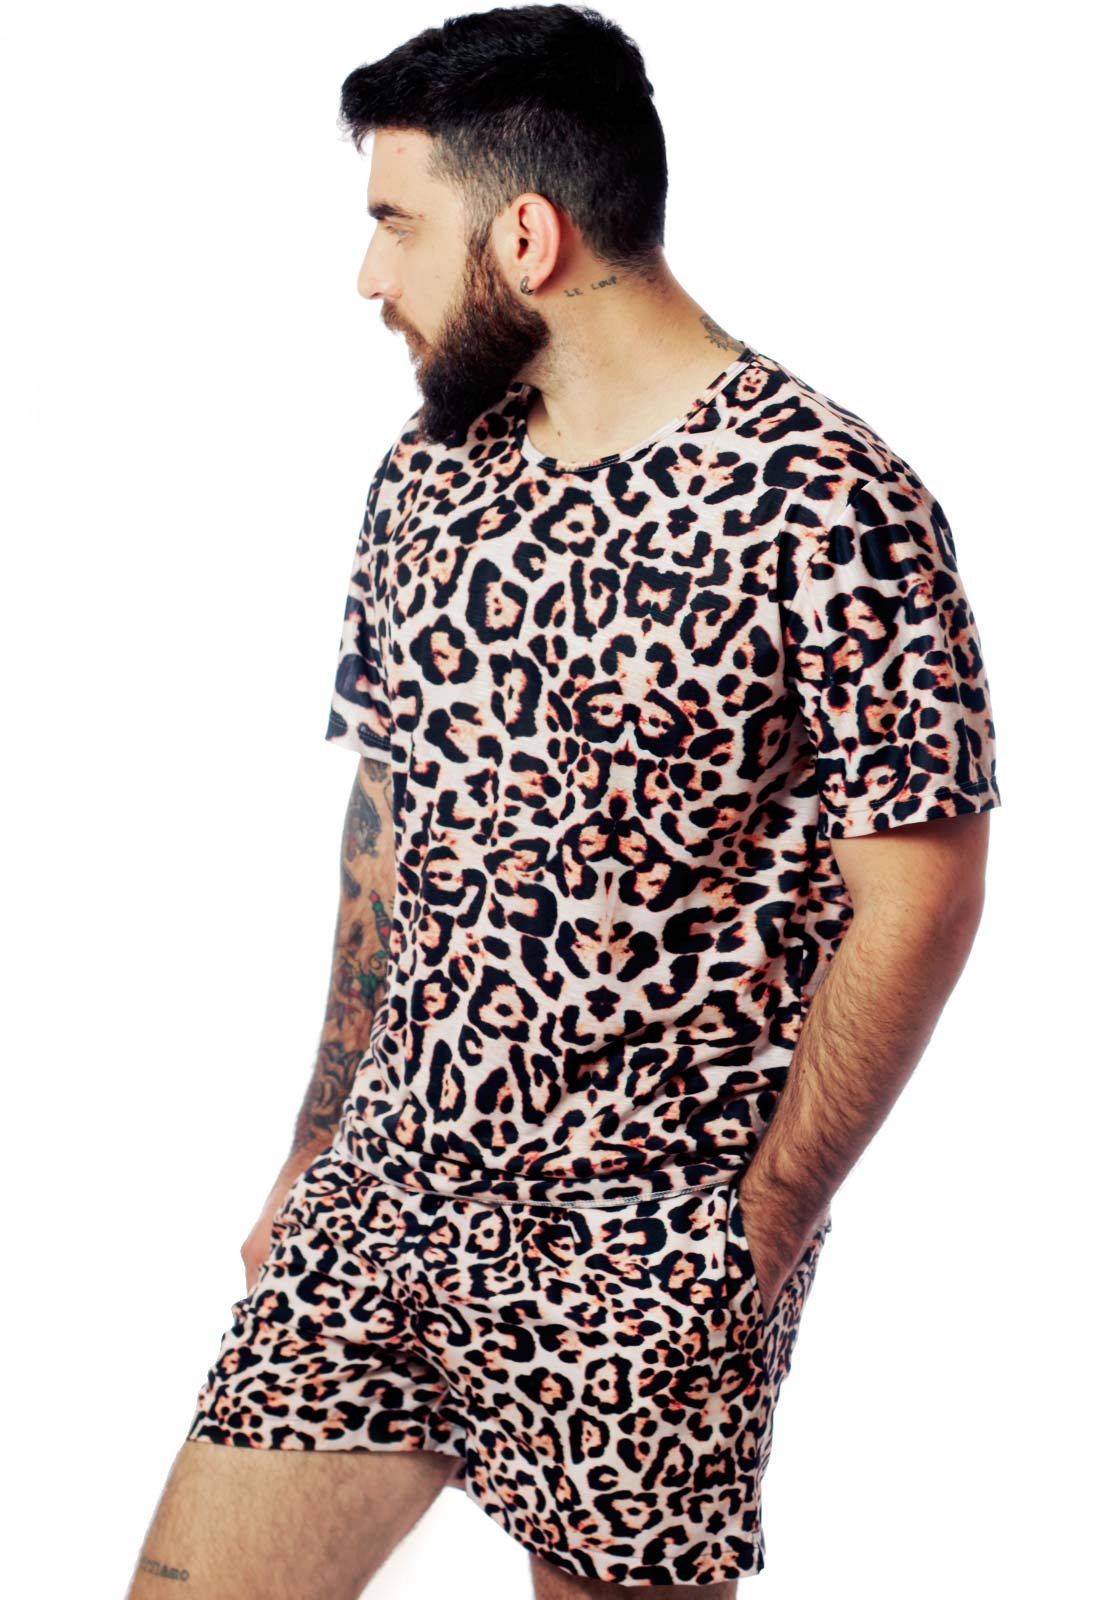 Conjunto Estampado Animal Print Camiseta + Shorts Unissex Guepardo